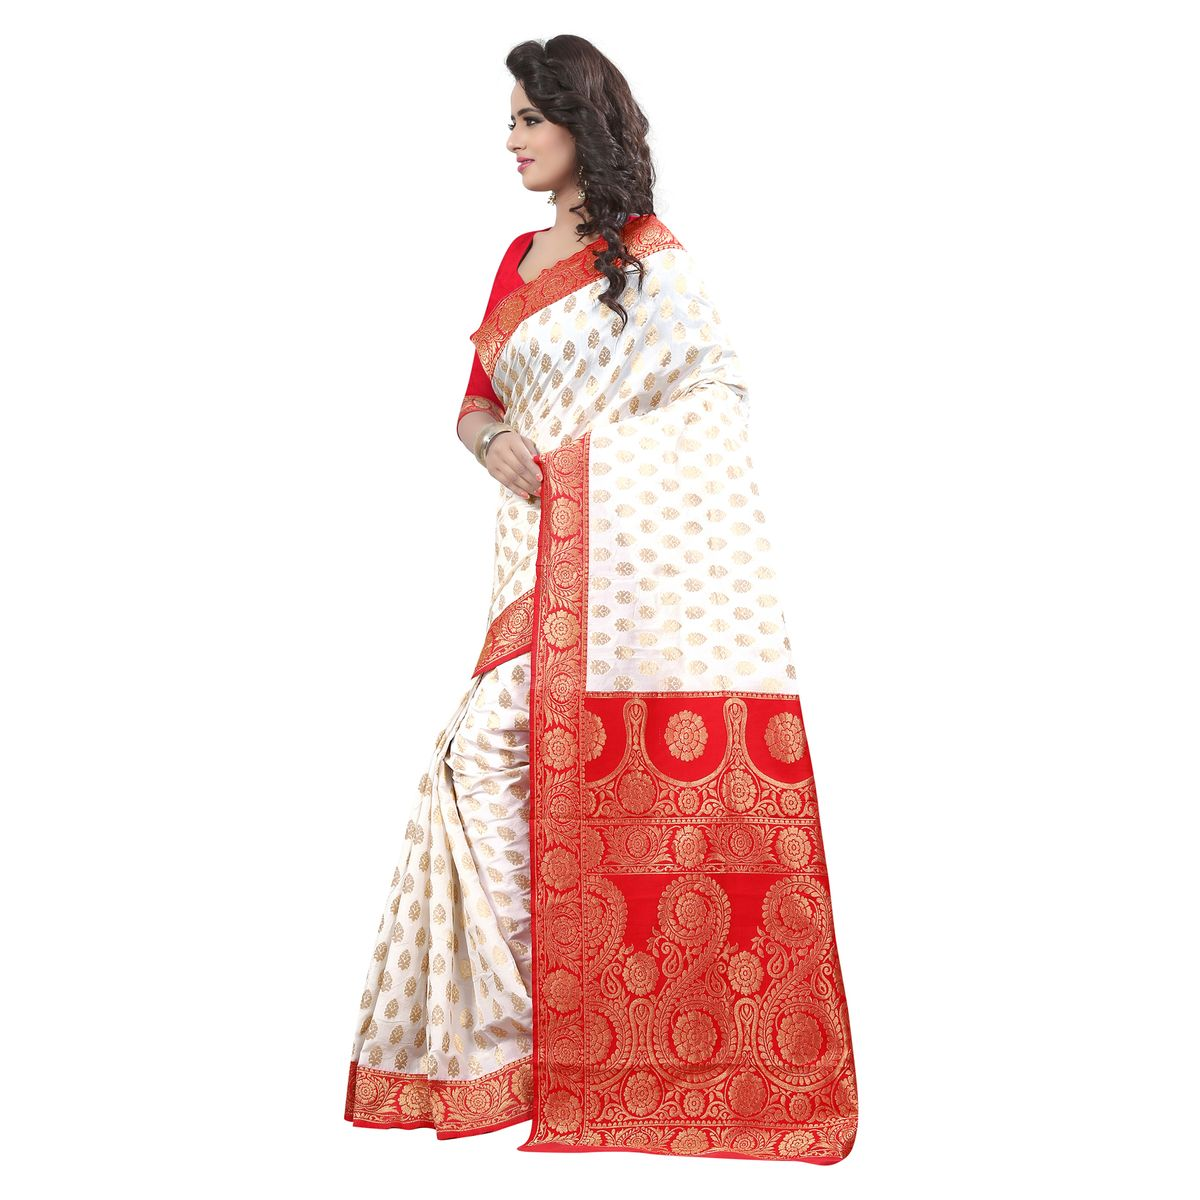 B4Best Creation Embellished Crepe Silk White and Red Color Saree for Women with Blouse Piece356